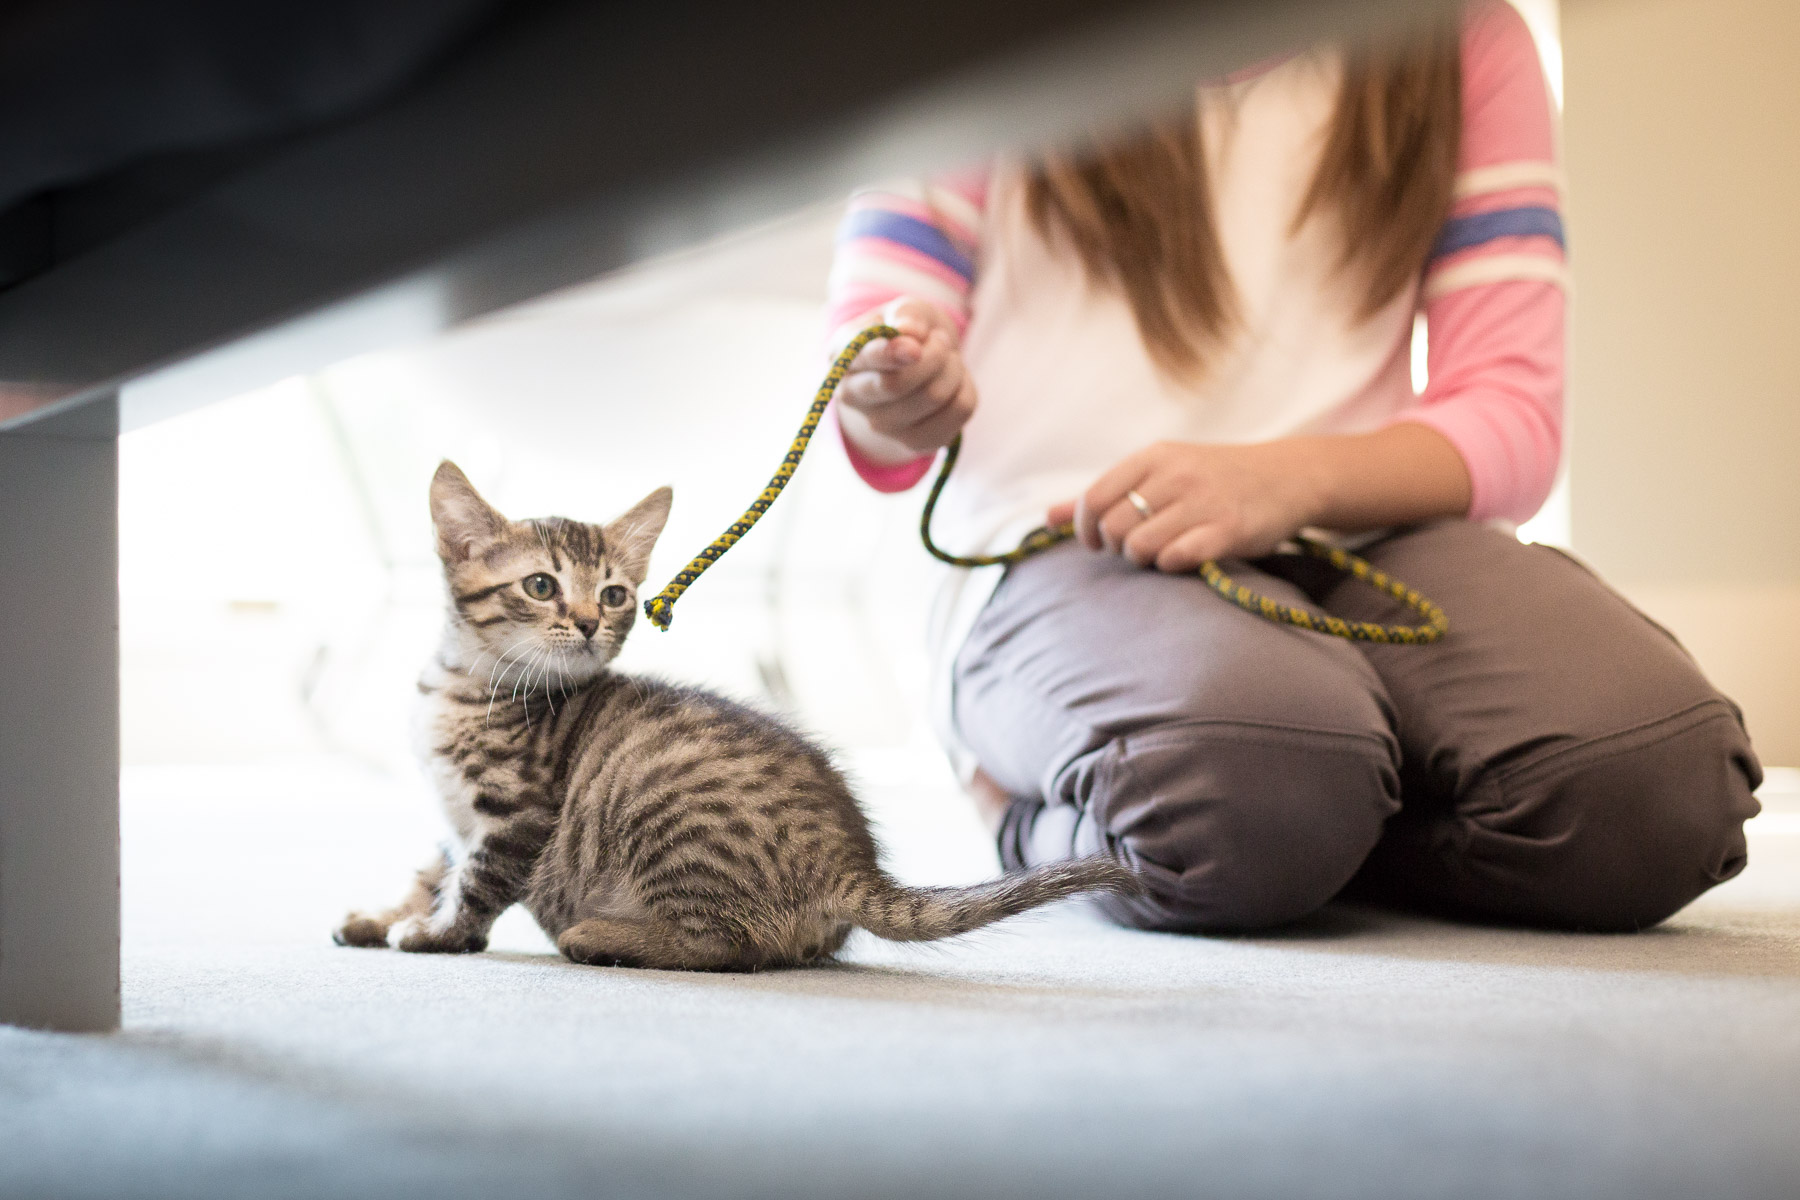 girl-playing-with-cat-in-bedroom-cat-photography.jpg